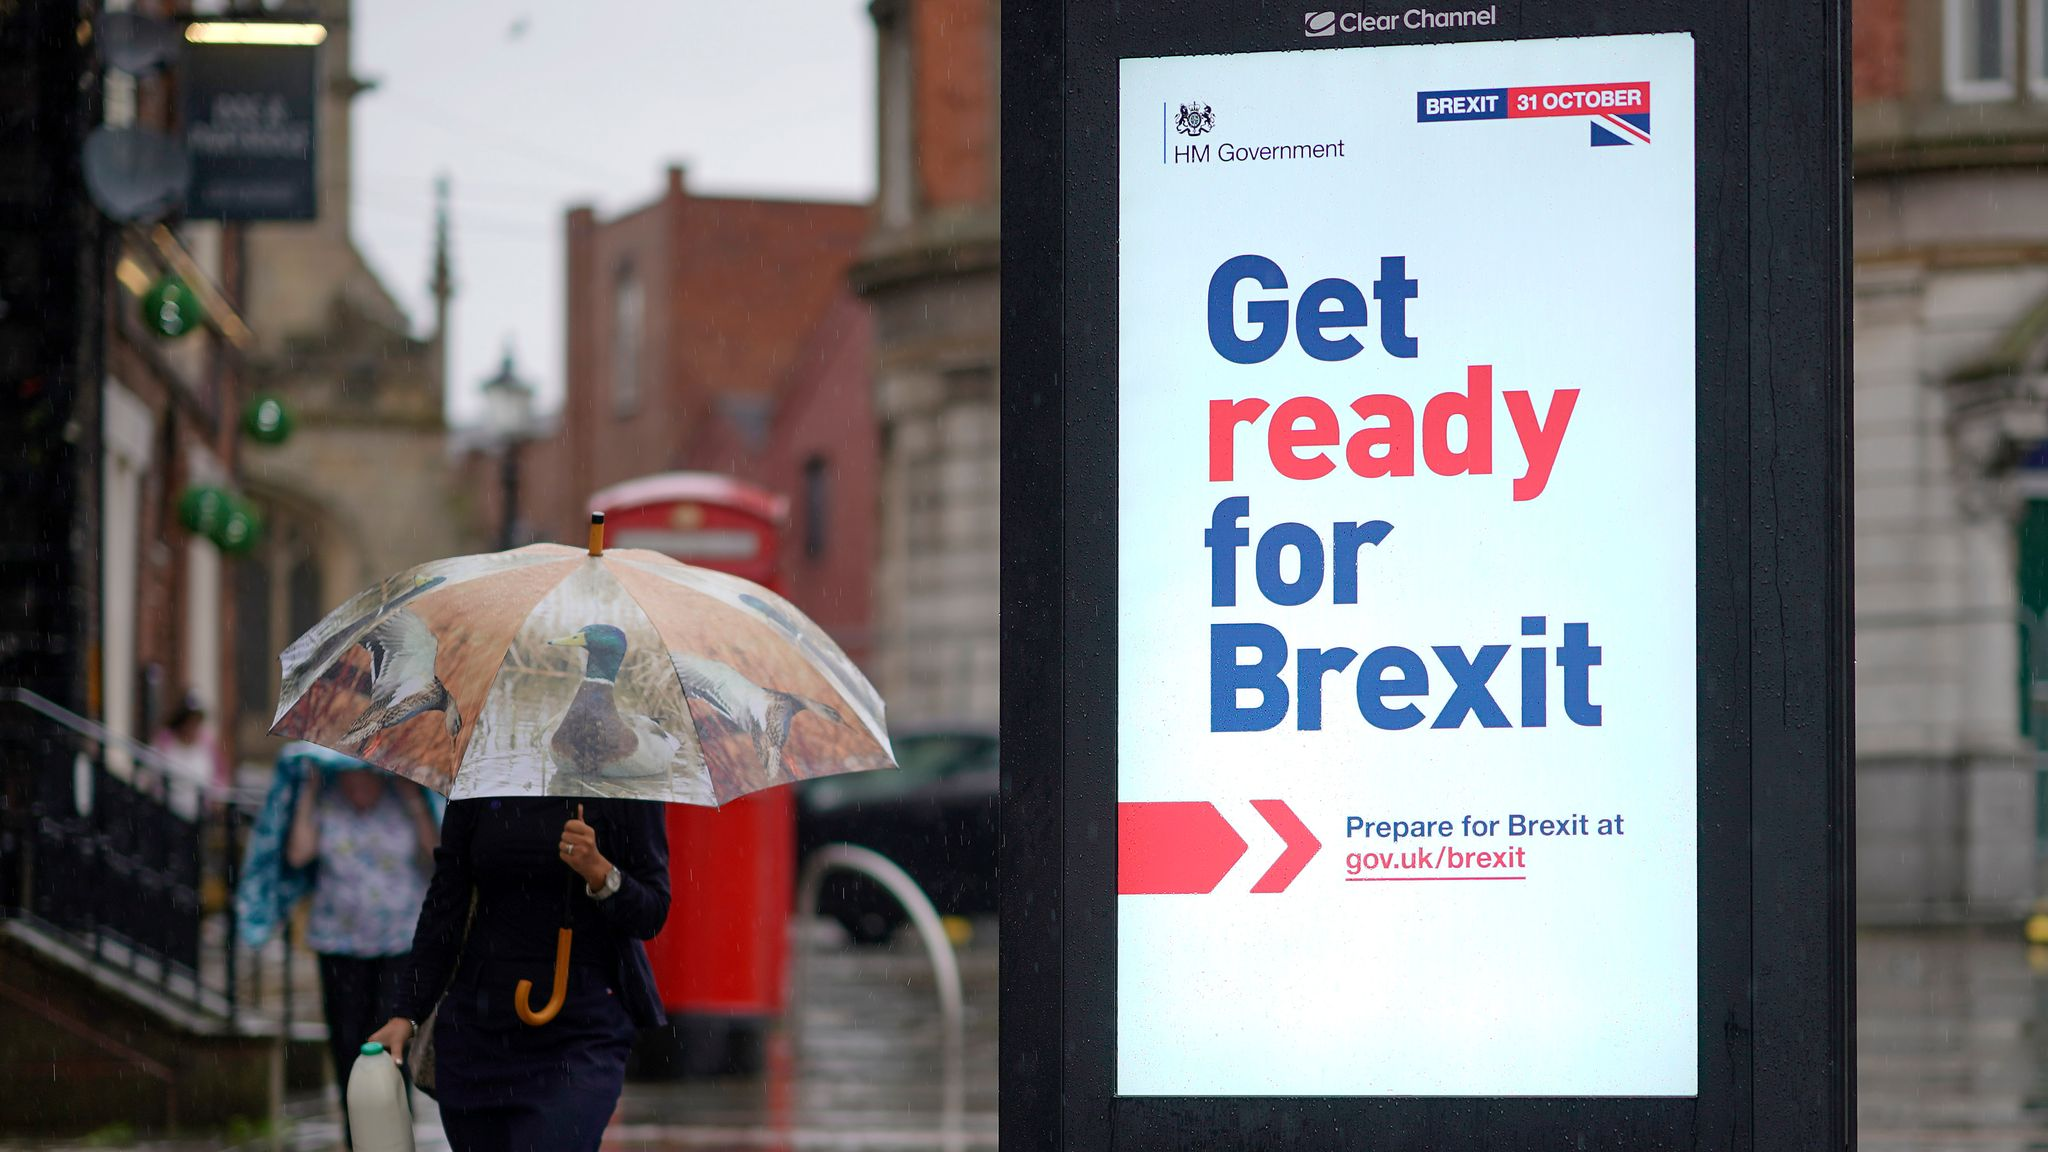 Brexit outdoor advertising banner on a street